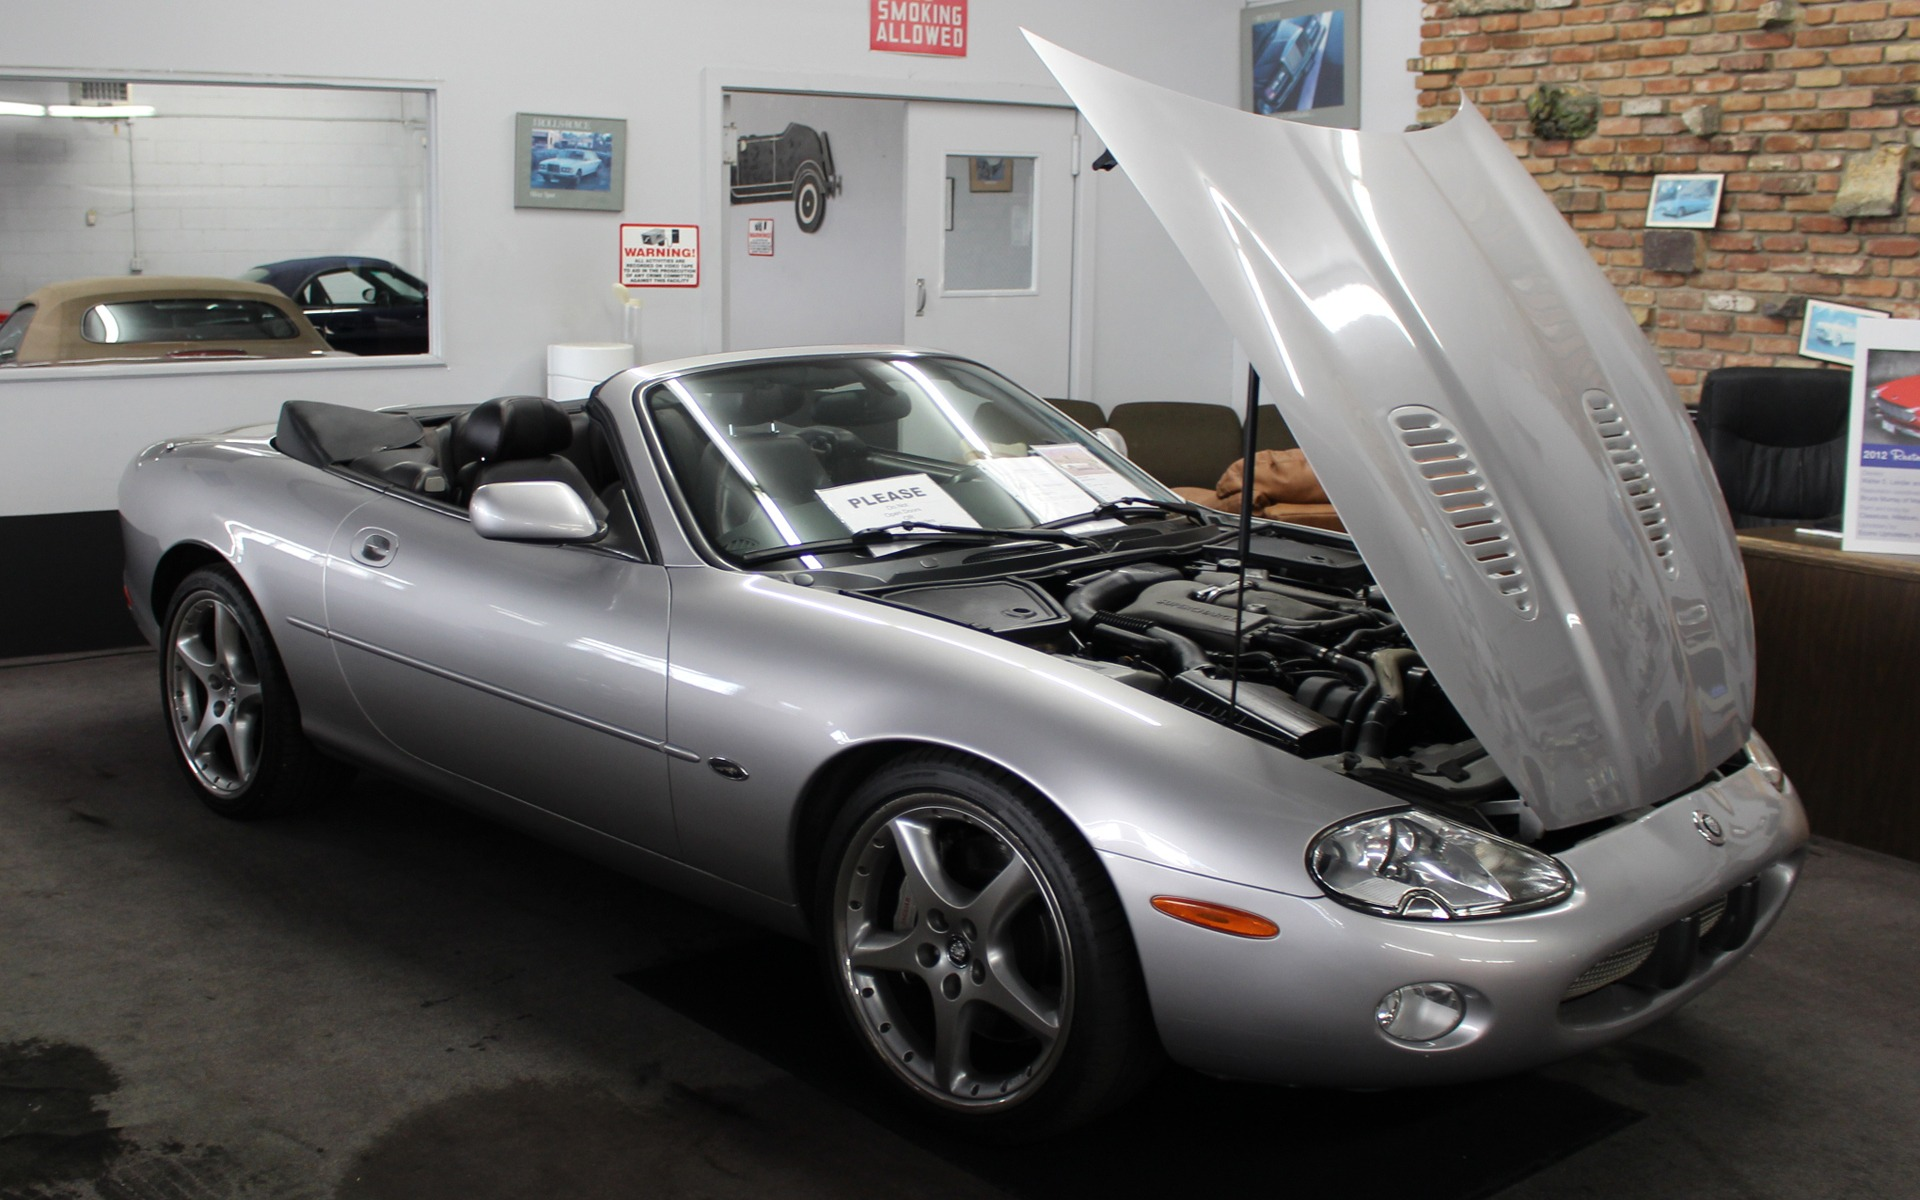 few clockwork who also xjs likely regular like classic shown jaguar low articles interest he customer used had groovecar classics acquiring the a kept of prospects mileage names trade in convertible just